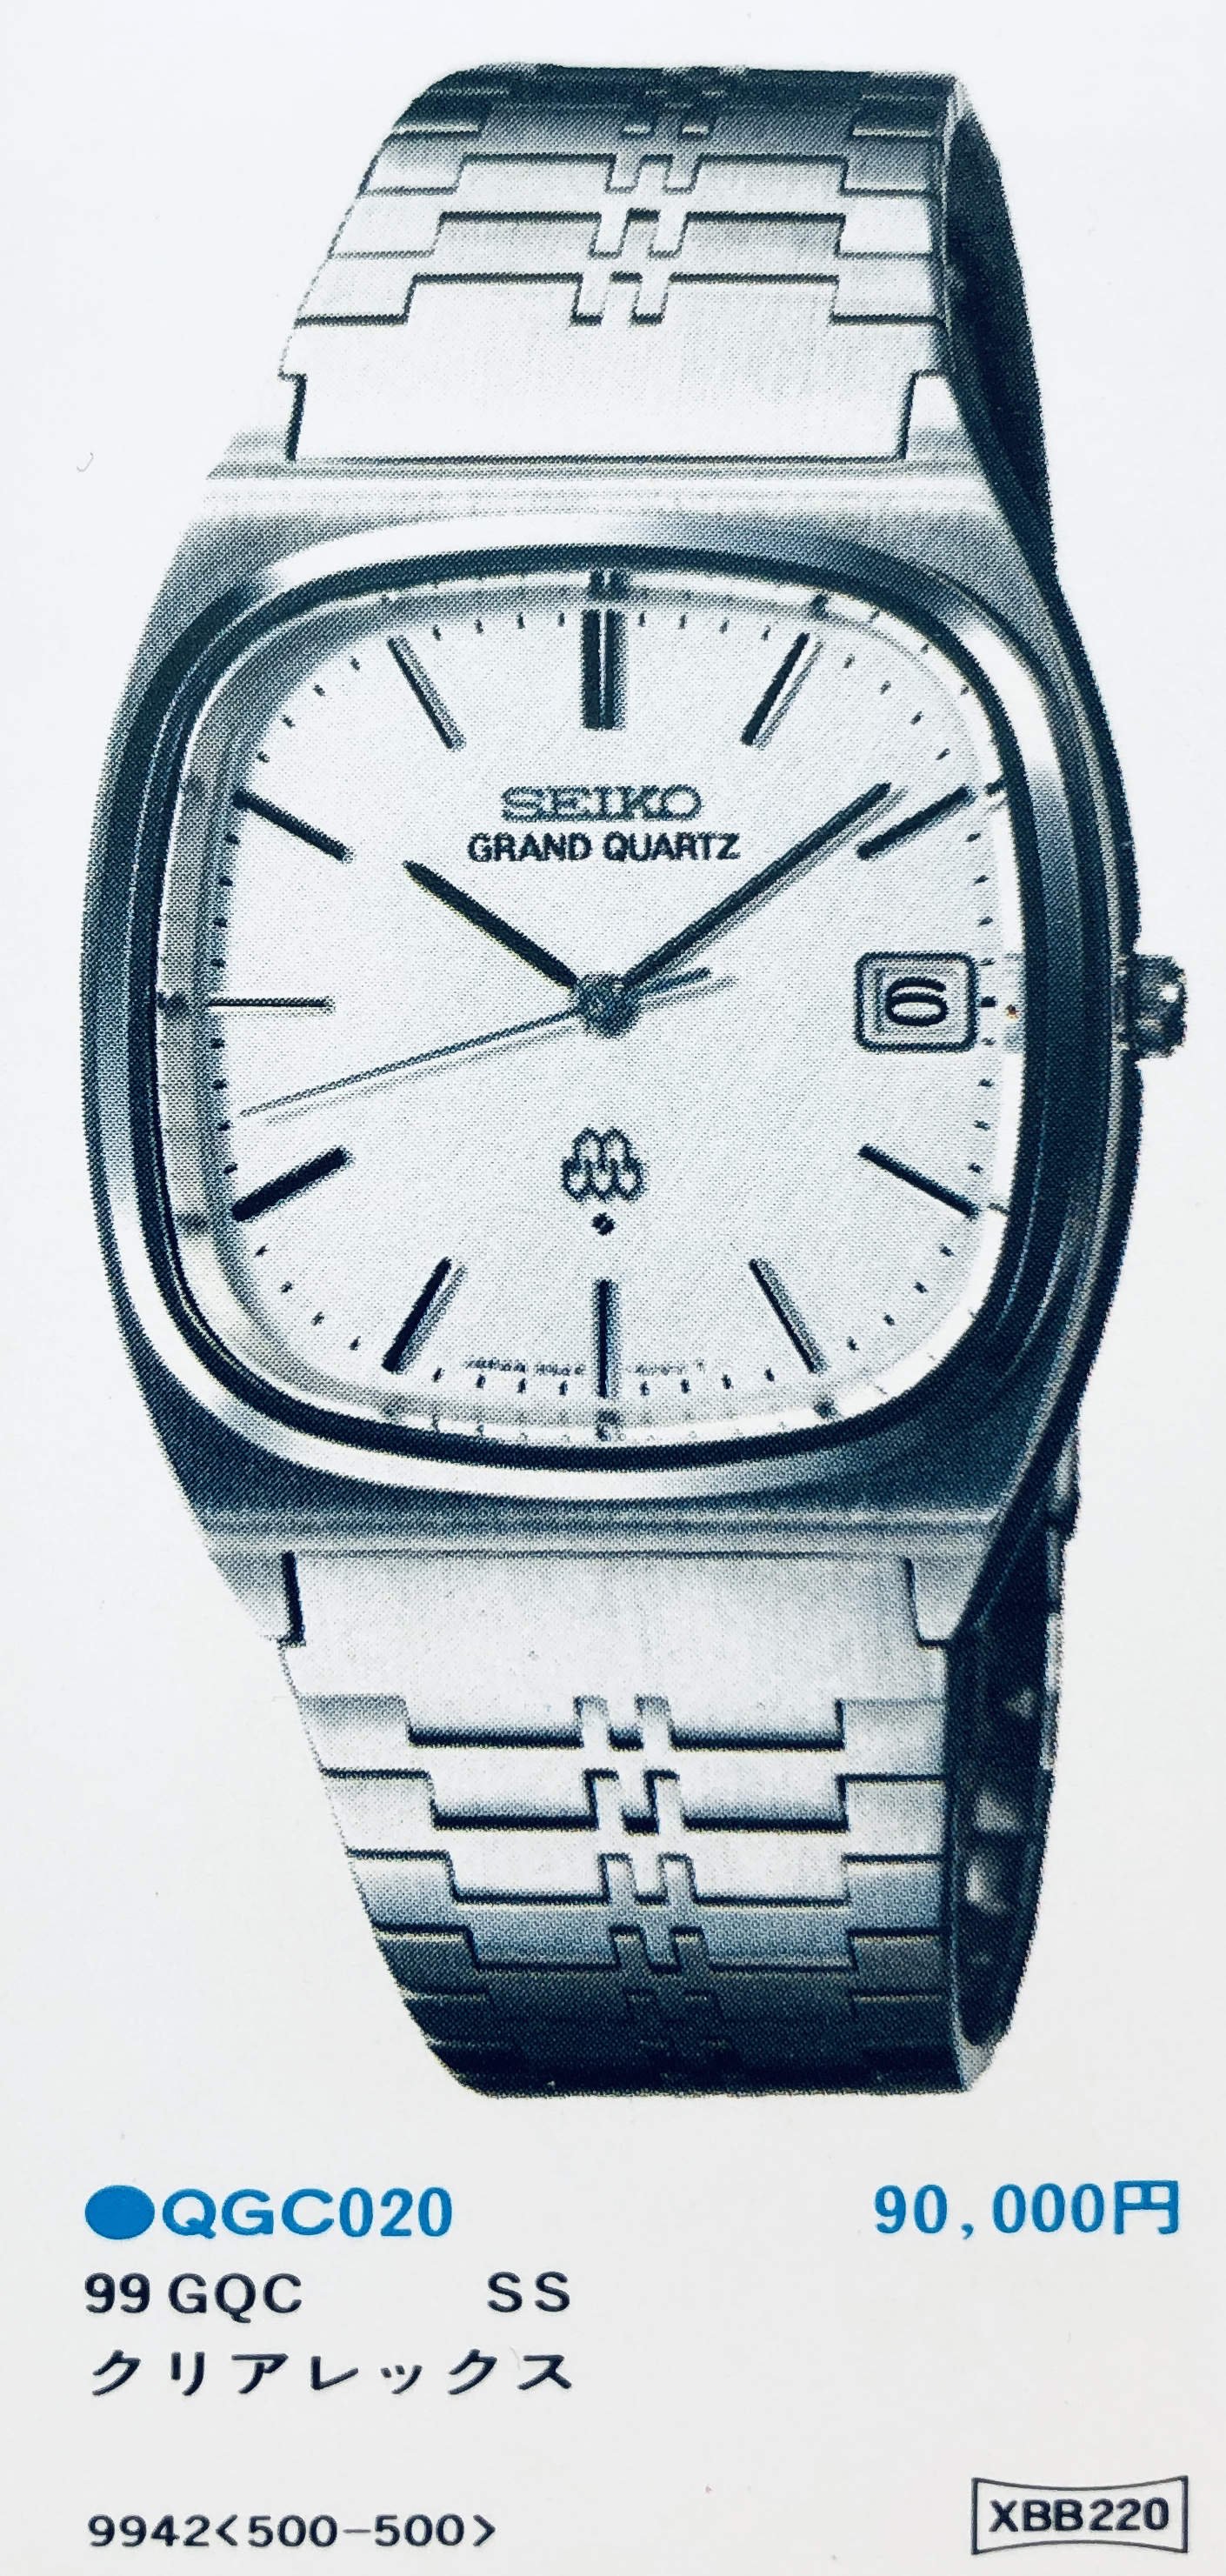 Seiko Grand Quartz 9942-5000 - no bracelet (Sold)